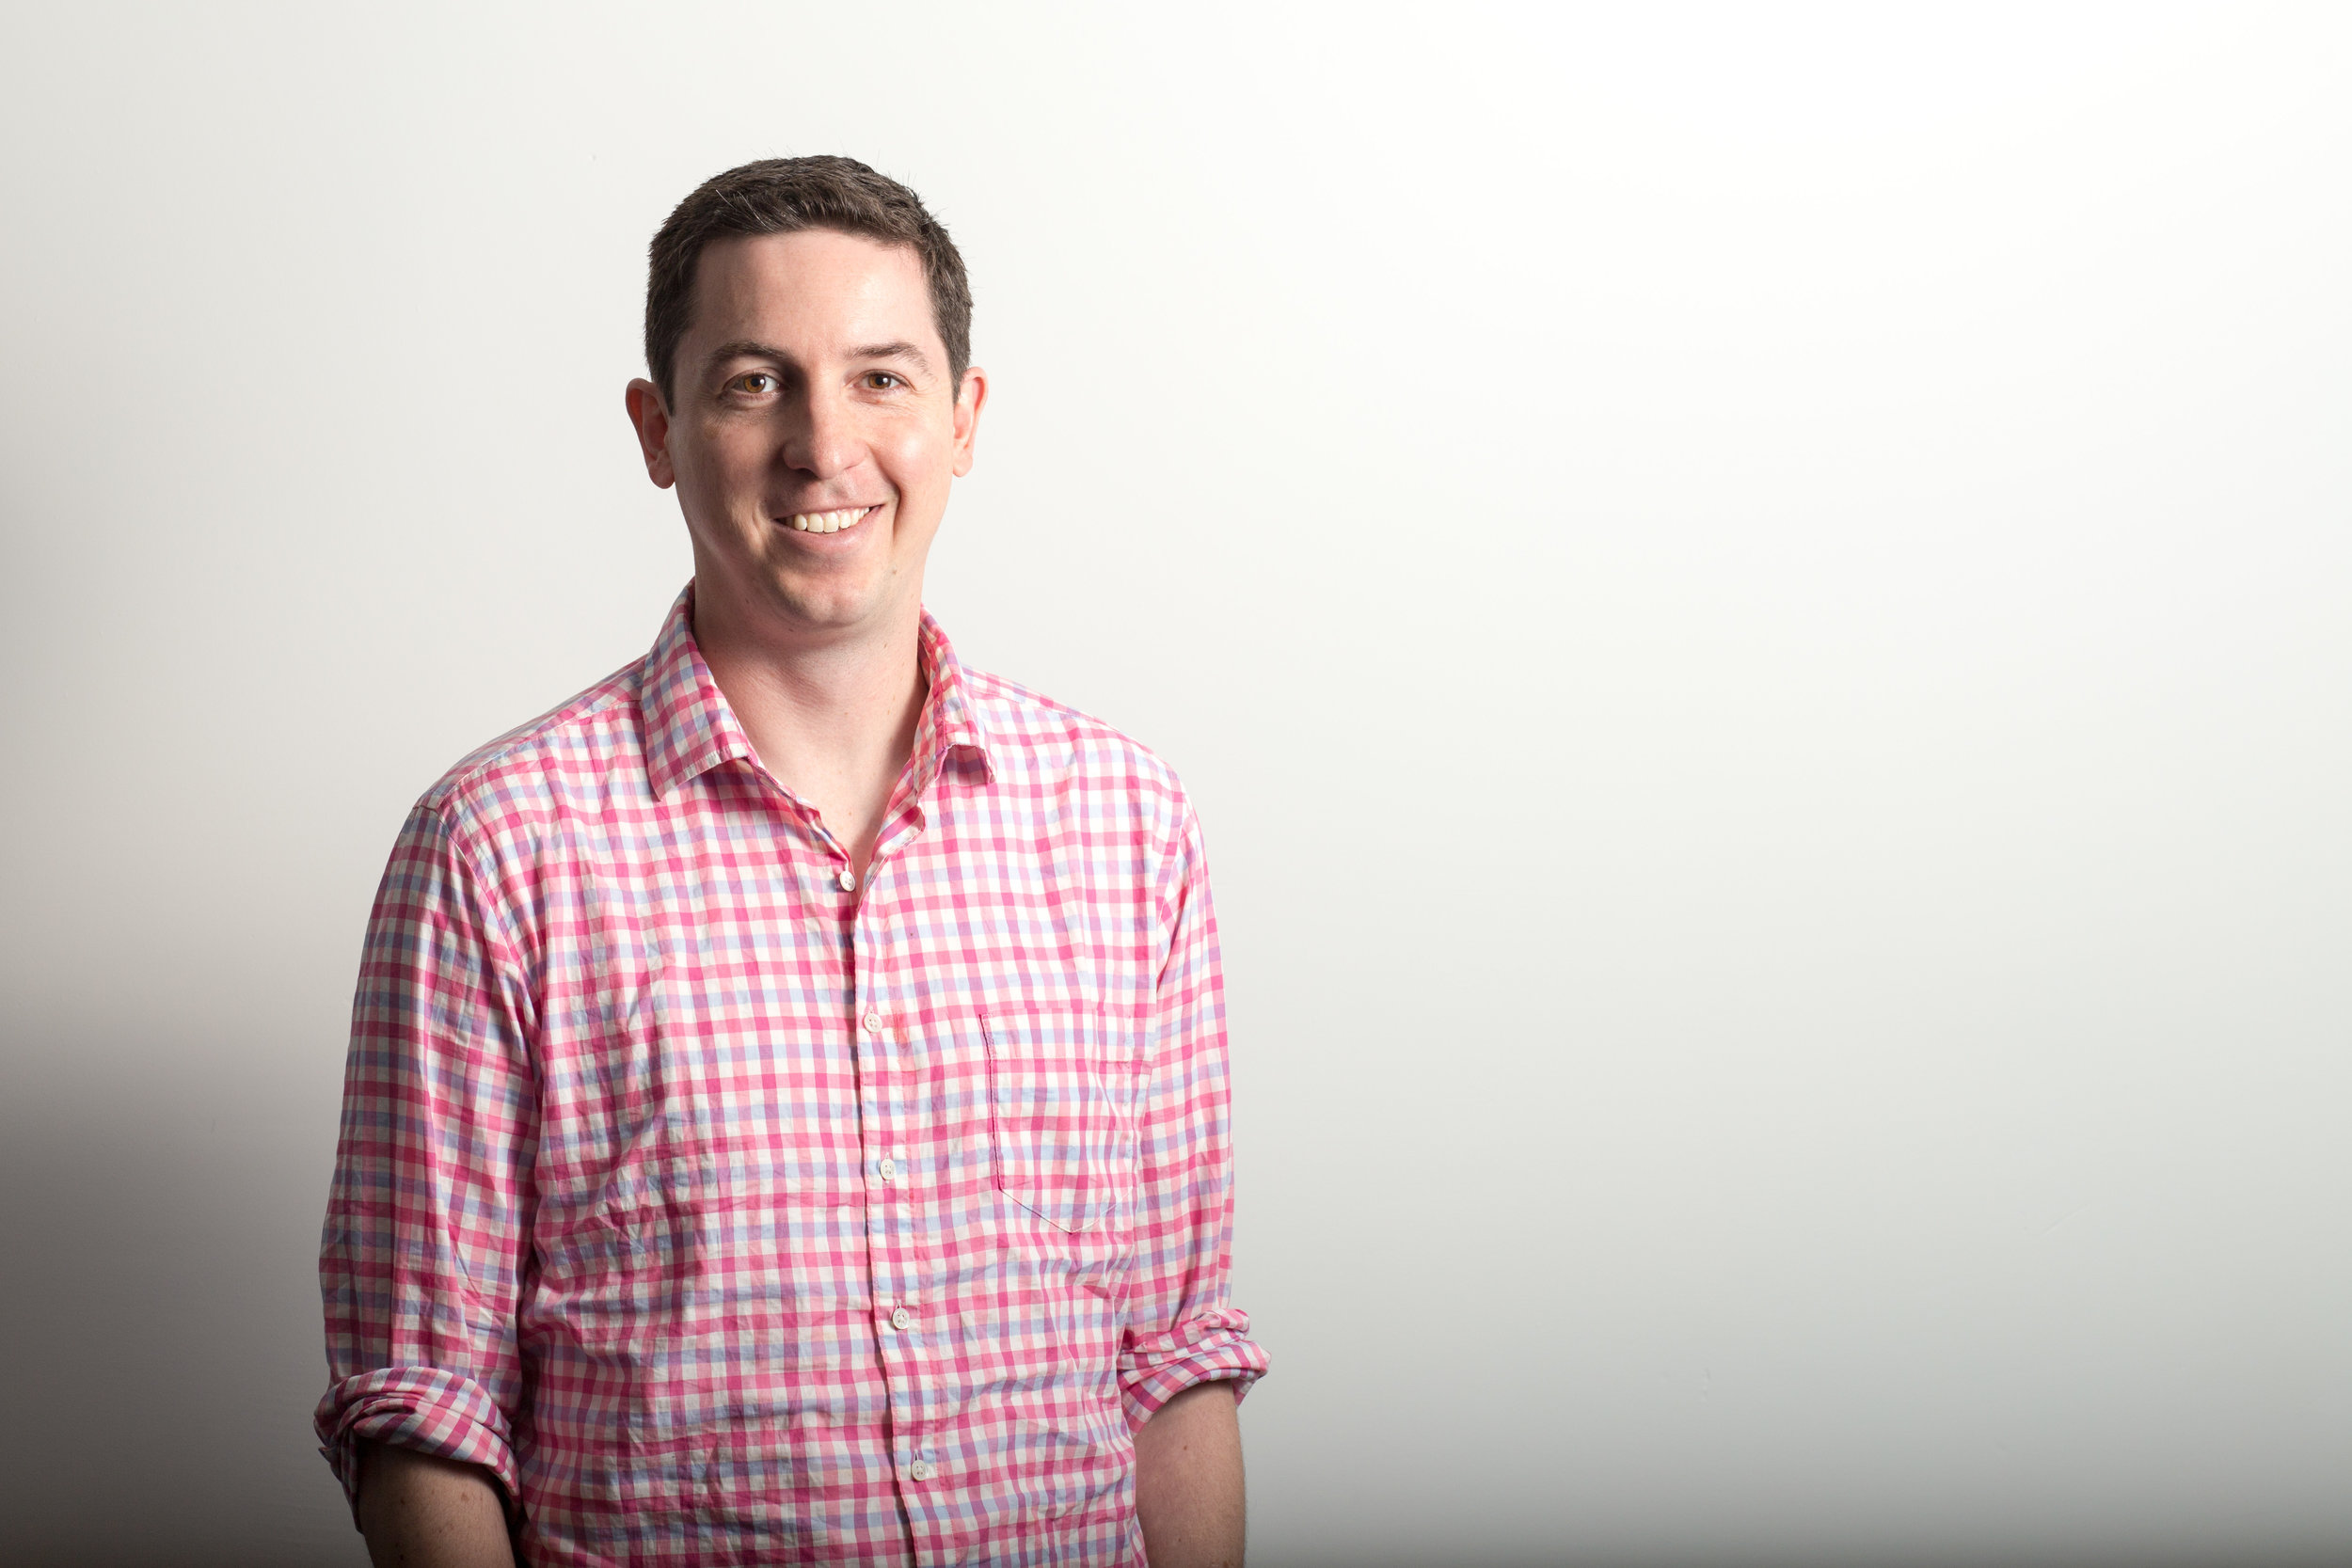 """""""I was never planning on living in Boston, but after almost 15 years I've found myself with deep roots here and there's nowhere I'd rather be. Joining Pledge 1% is my way of making sure any success we have at Salsify is invested back in the community that I love so much.""""  - Jeremy Redburn, Co-Founder at Salsify"""